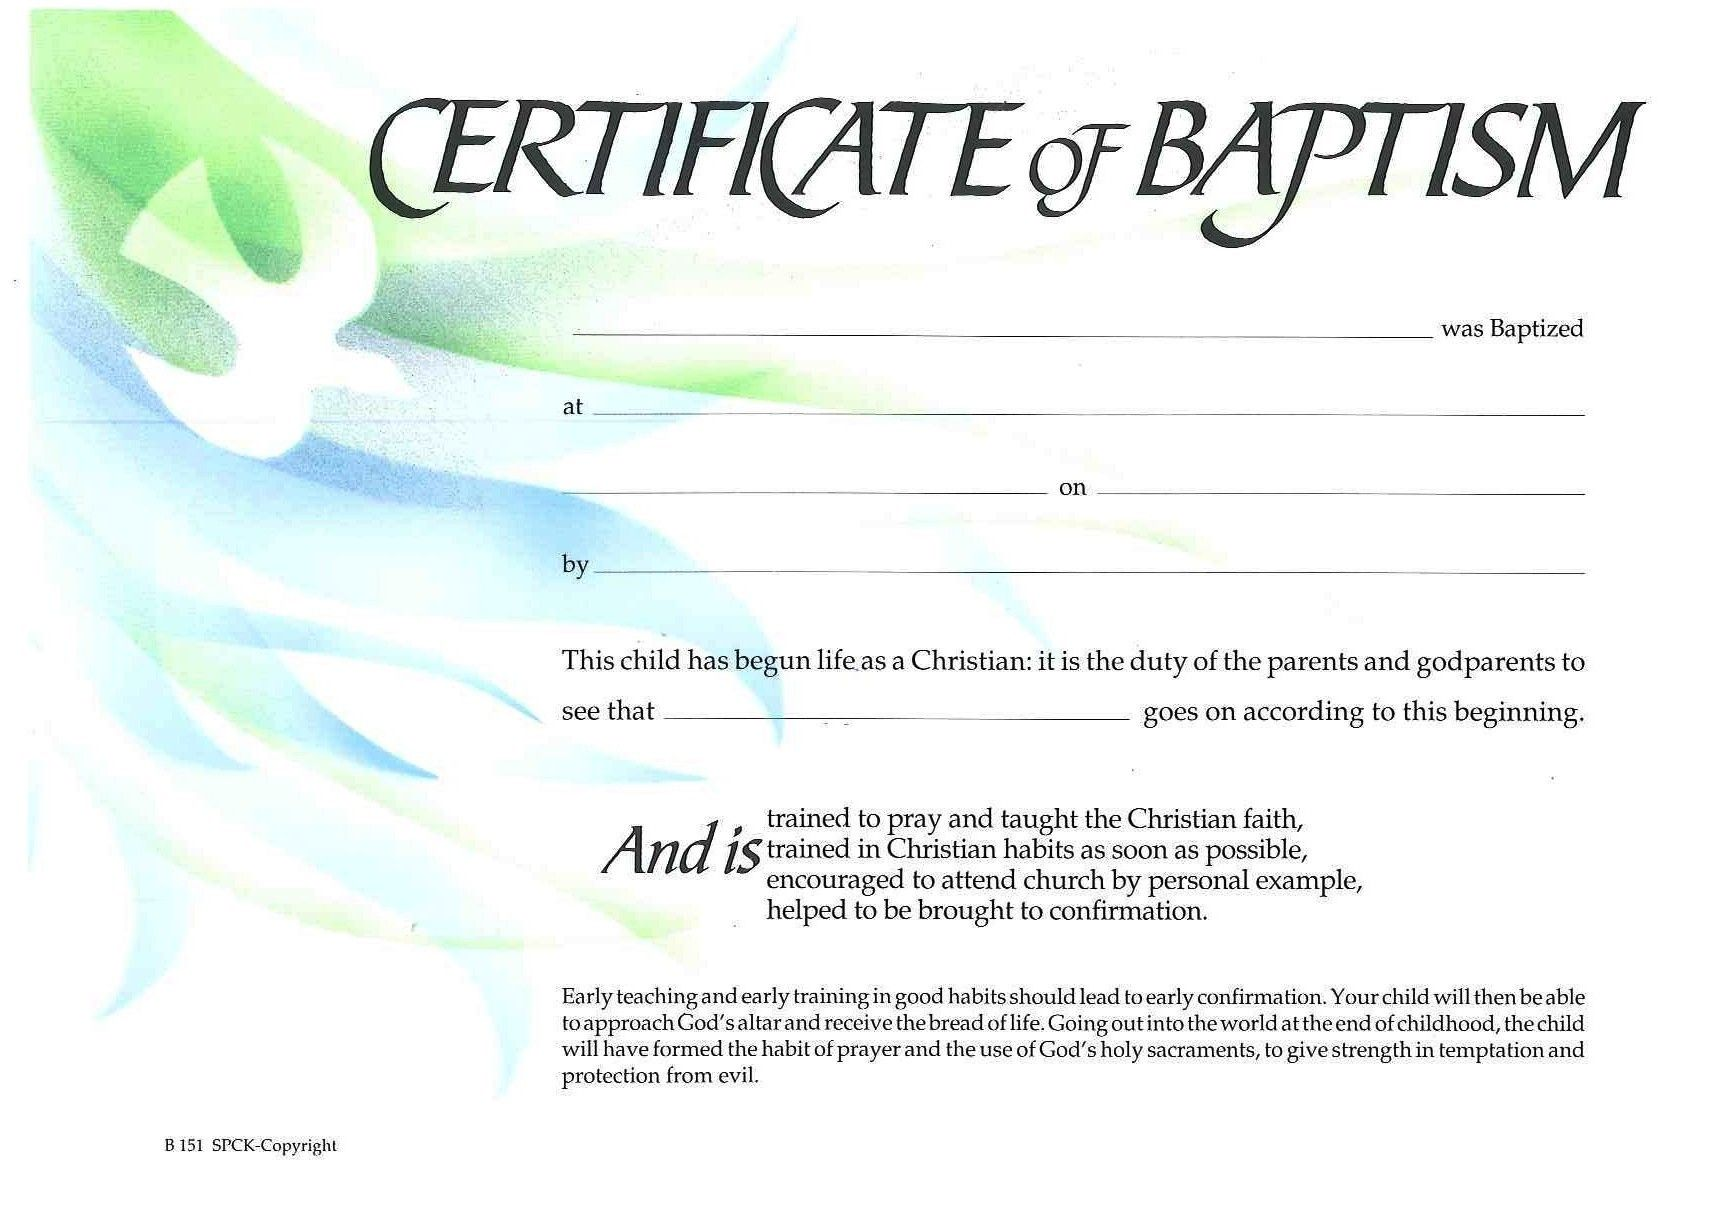 Baptism certificate xp4eamuz sunday school pinterest certificate of honor sample alramifo Choice Image